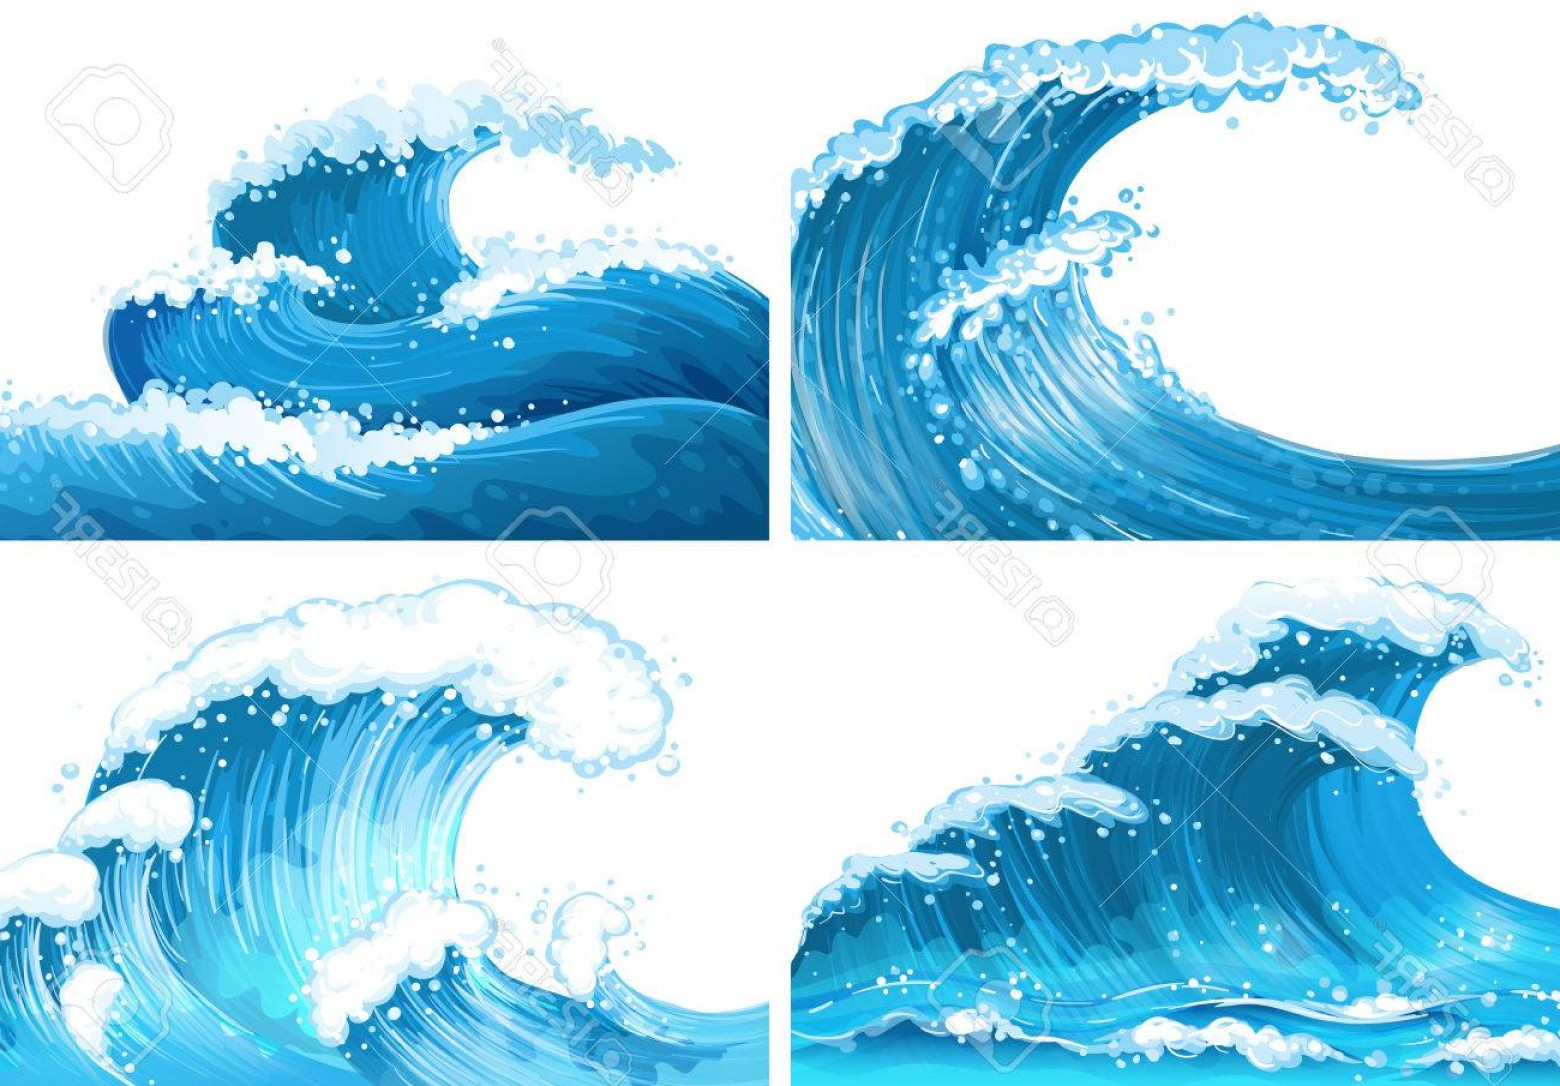 Ocean Wave Vector Illustration: Photostock Vector Four Scenes Of Ocean Waves Illustration